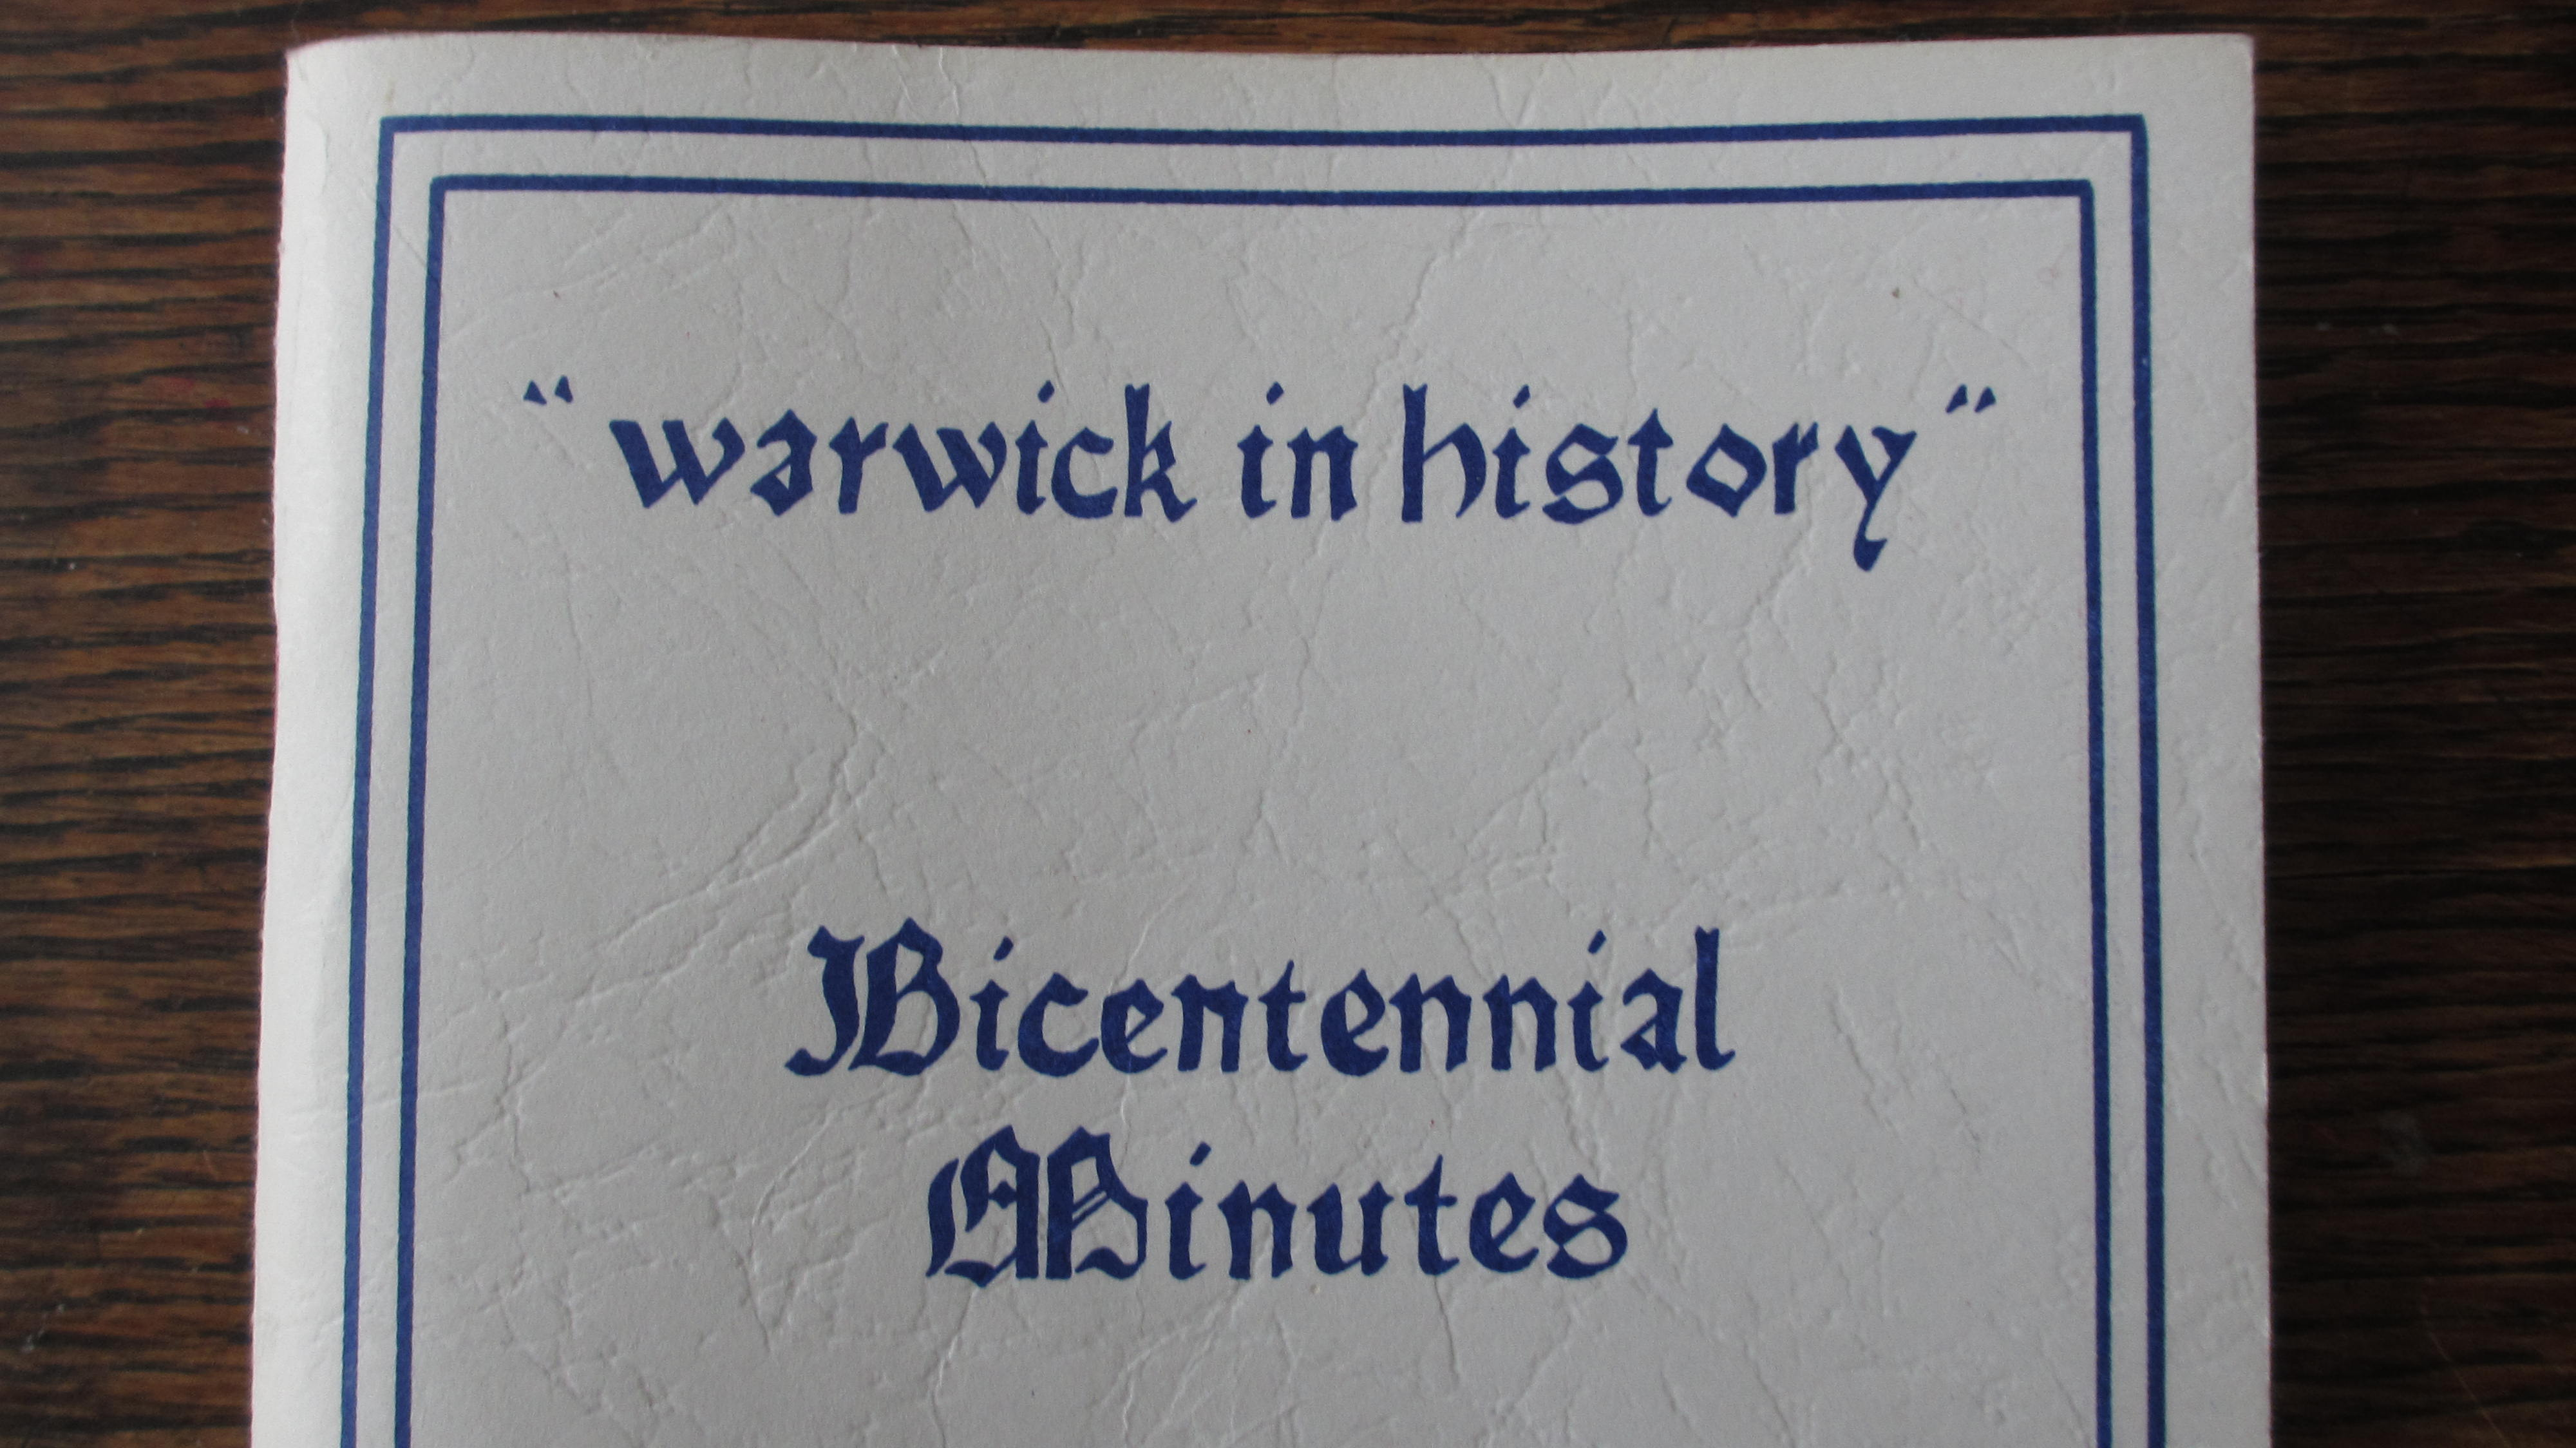 Warwick in History – On this date, March 14, 1898, occurred a fire in Warwick which showed that there was some great fire-fighting ability in the women of the village. (more)